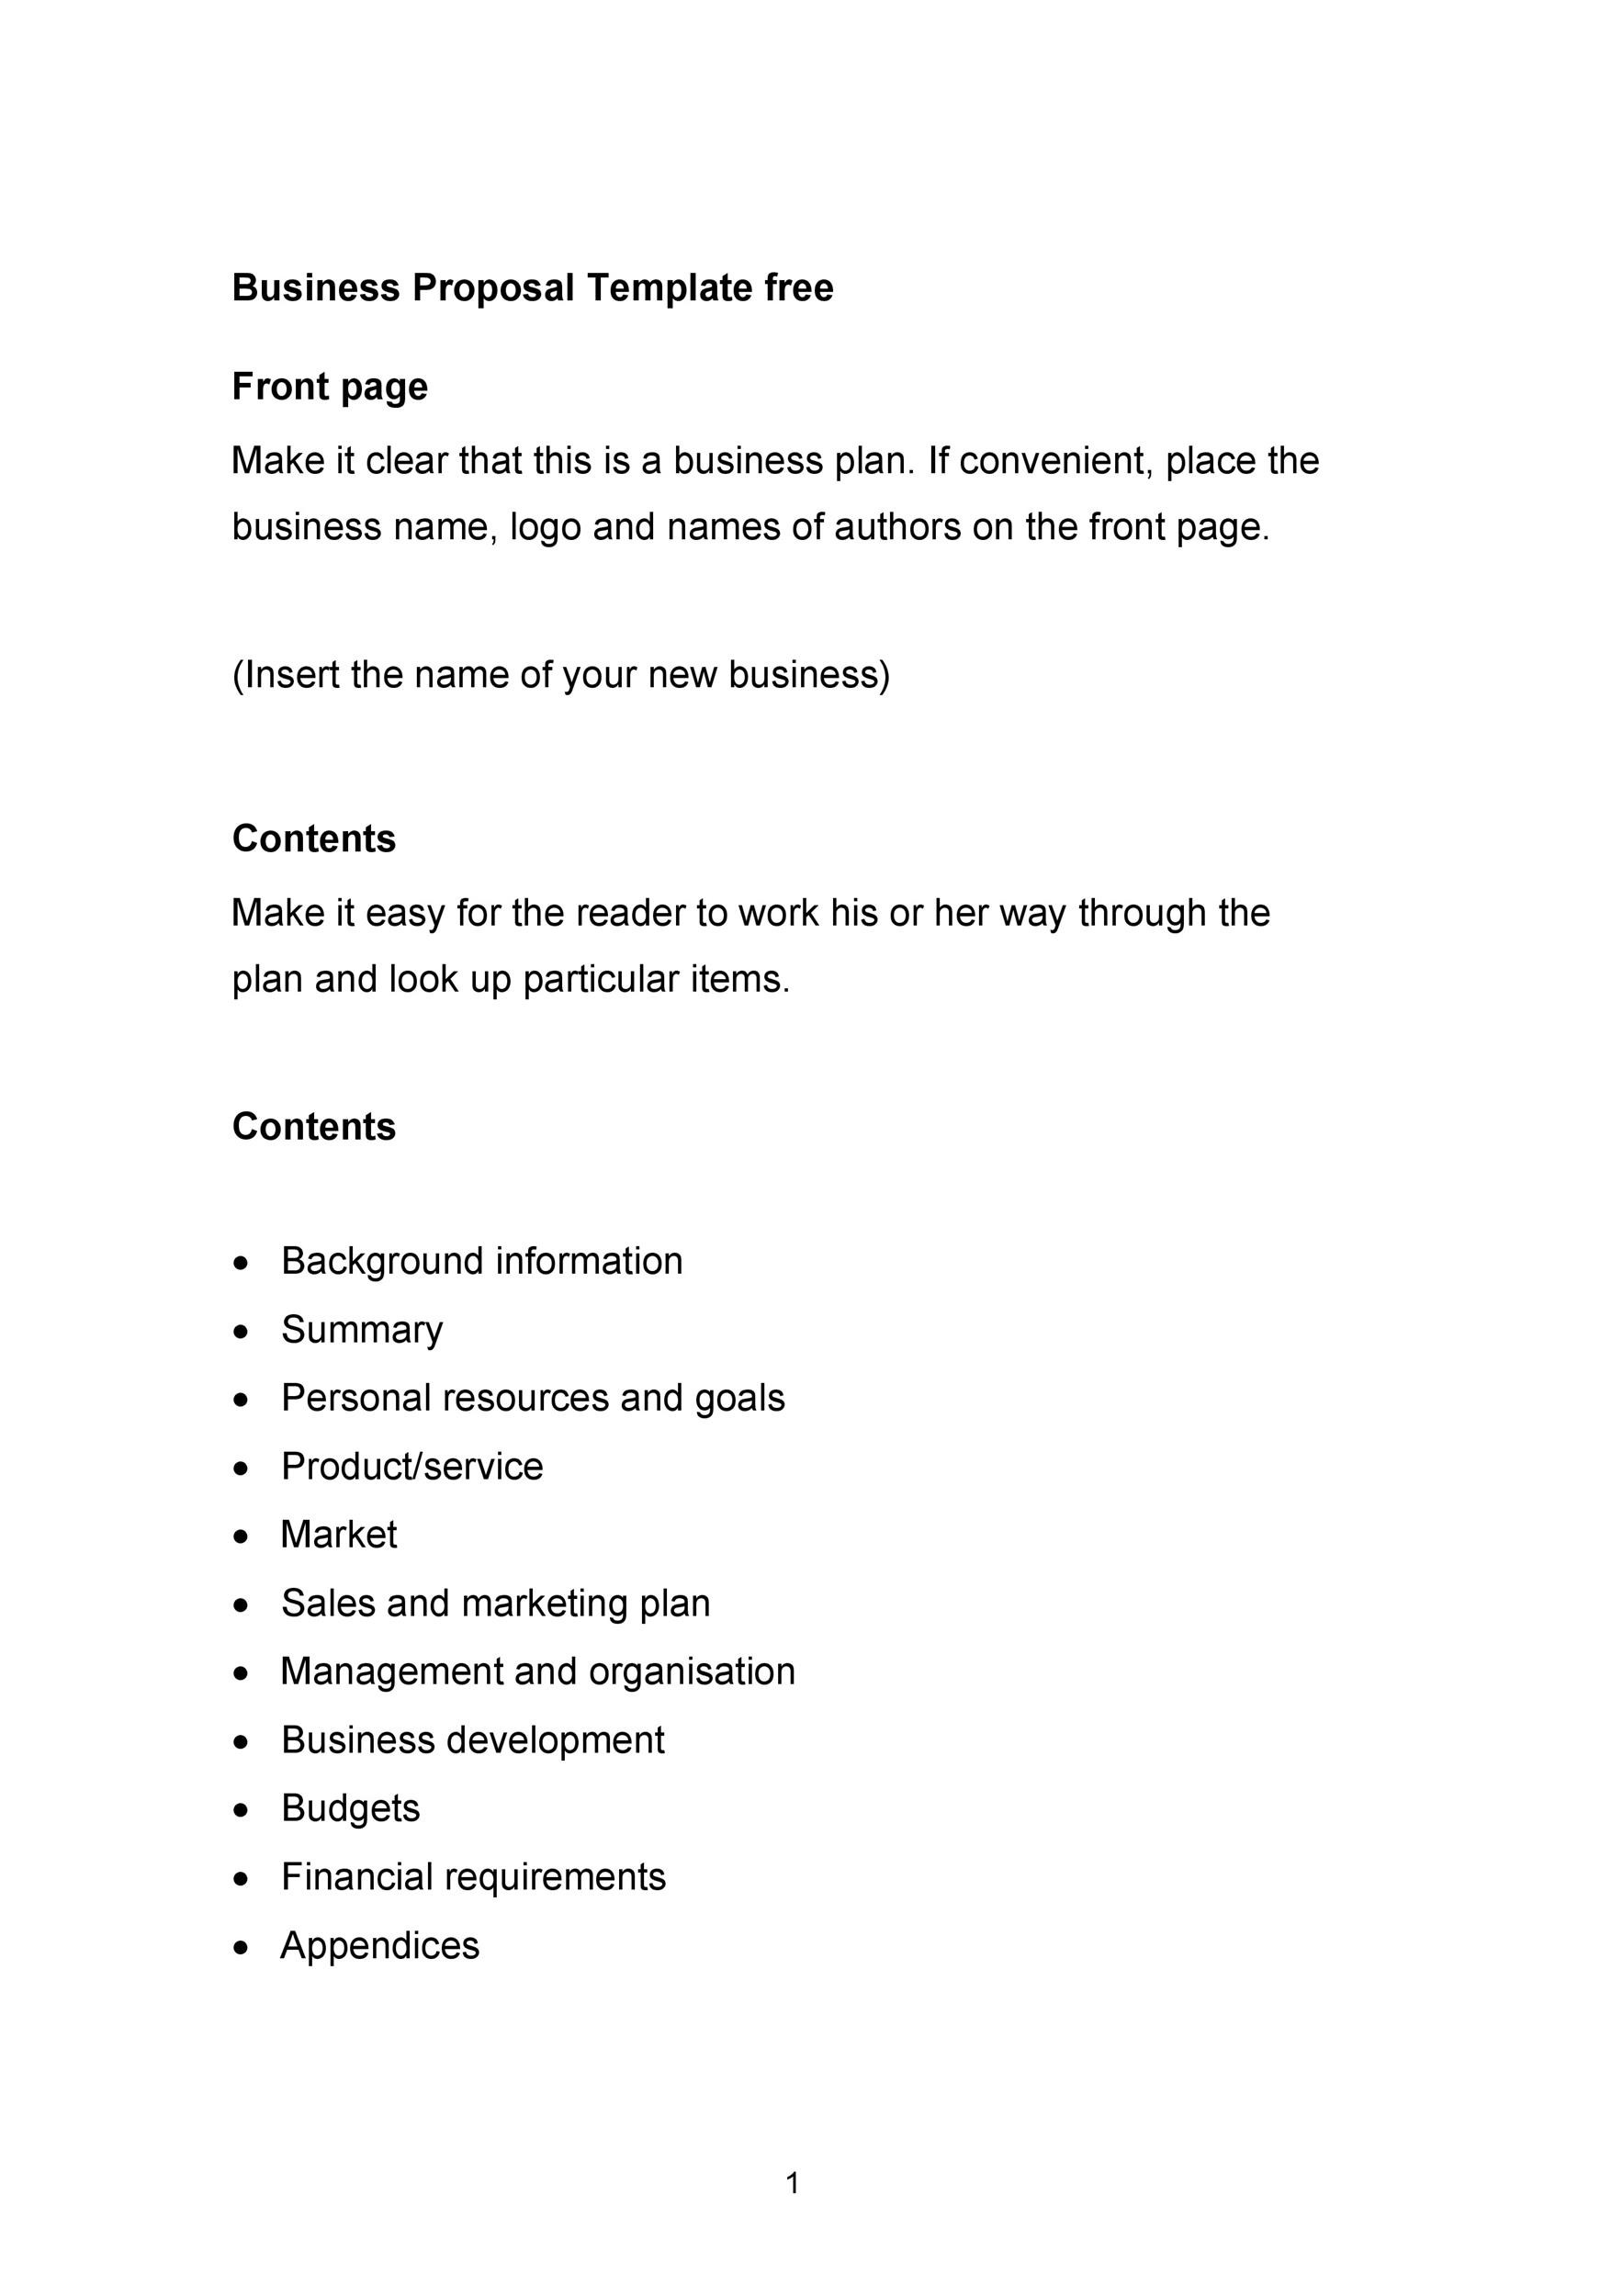 Free Business proposal Template 13